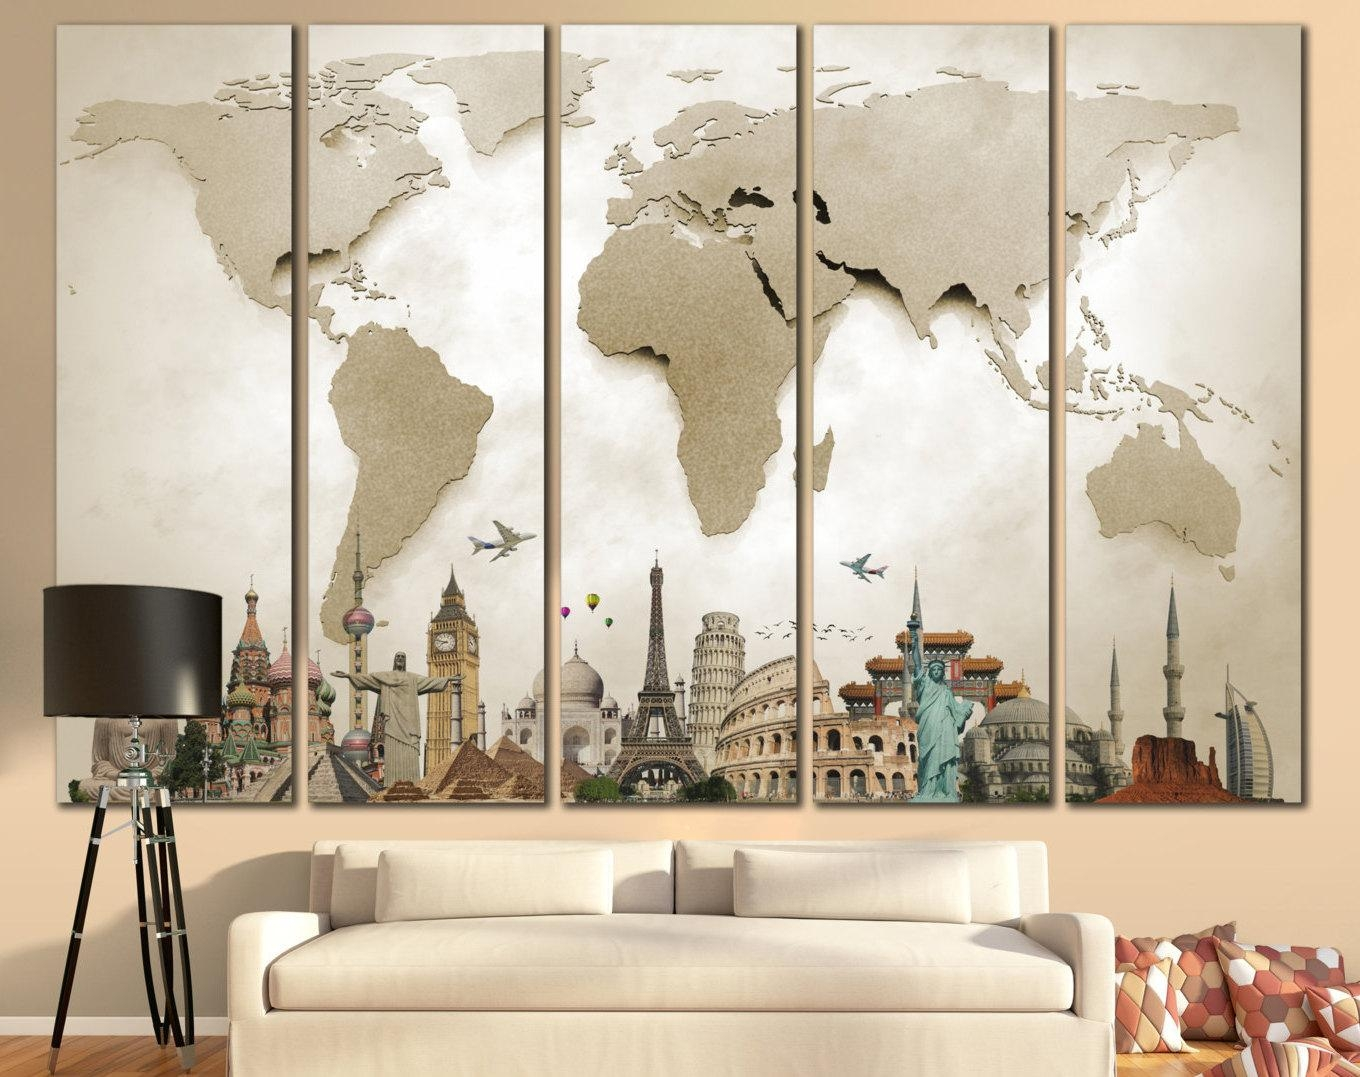 ▻ Amiable Figure Cheap Decorating Ideas For Living Room Walls Pertaining To Cheap Big Wall Art (View 4 of 20)